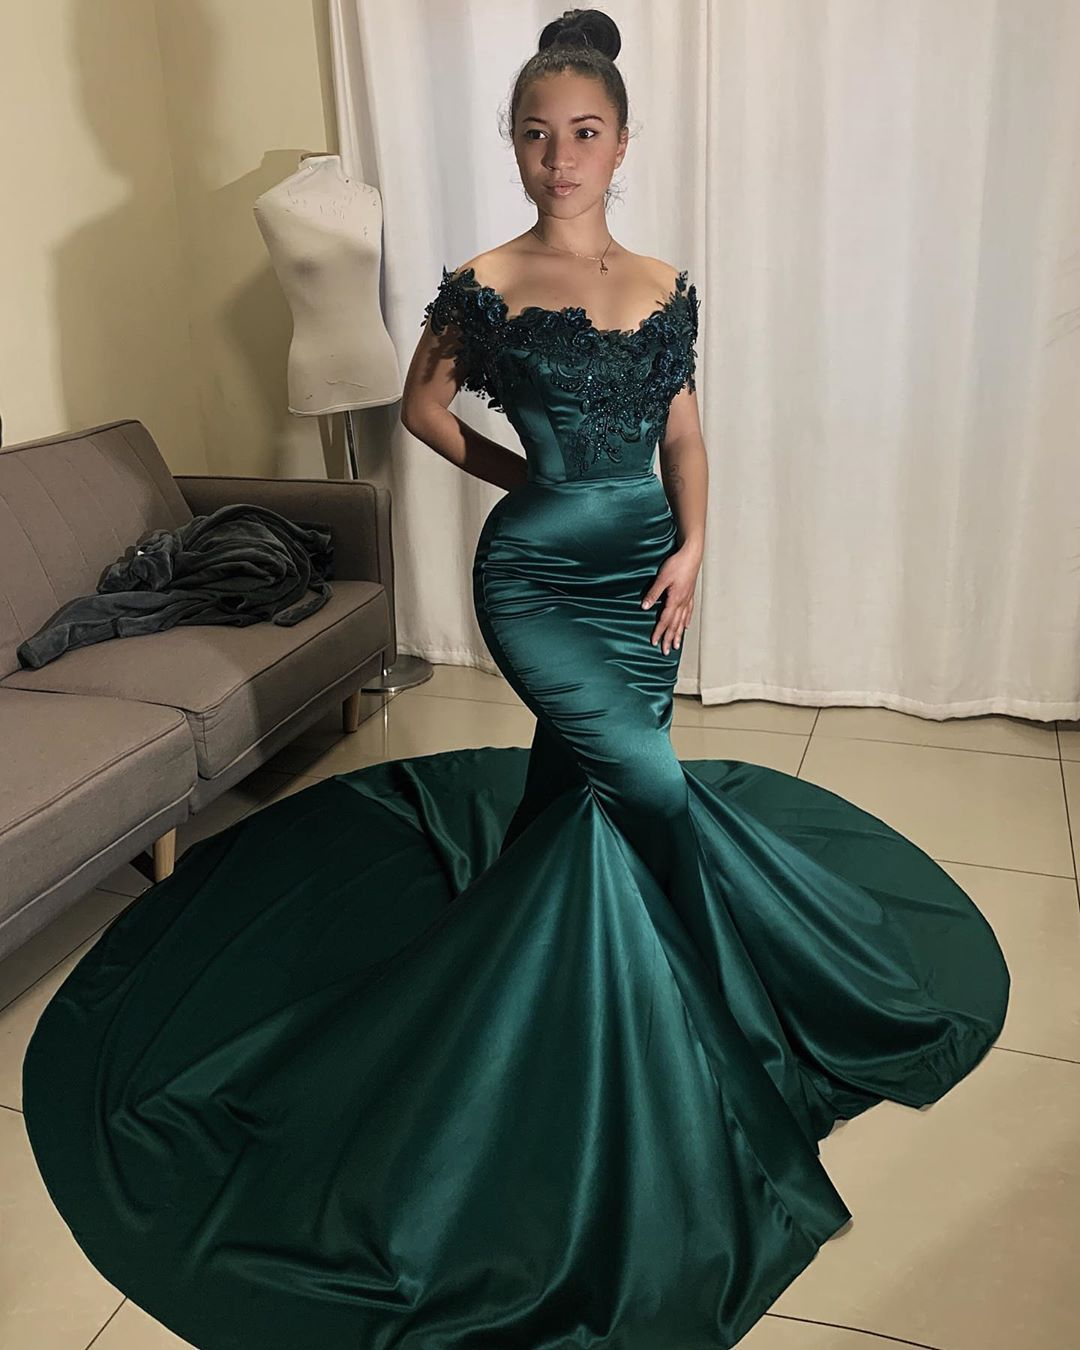 Ruberto Scholtz On Instagram Green With Envy Back To Basics A Strong Color And A Good Silhoue Dark Green Prom Dresses Green Prom Dress Cheap Prom Dresses [ 1350 x 1080 Pixel ]